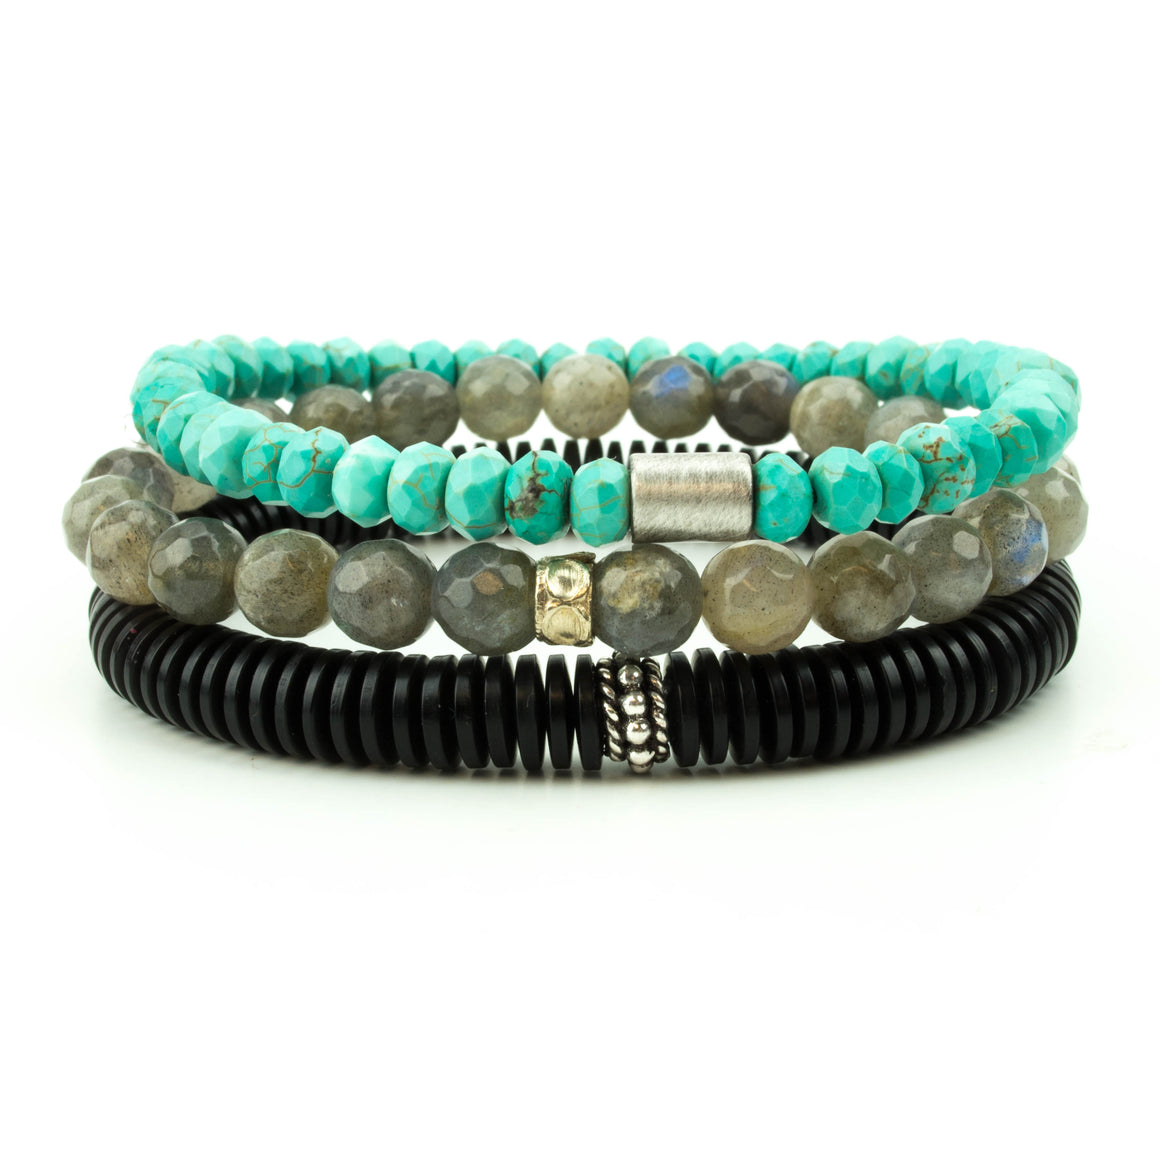 men's stretch beaded bracelet stack with turquoise, labradorite and black amber disks